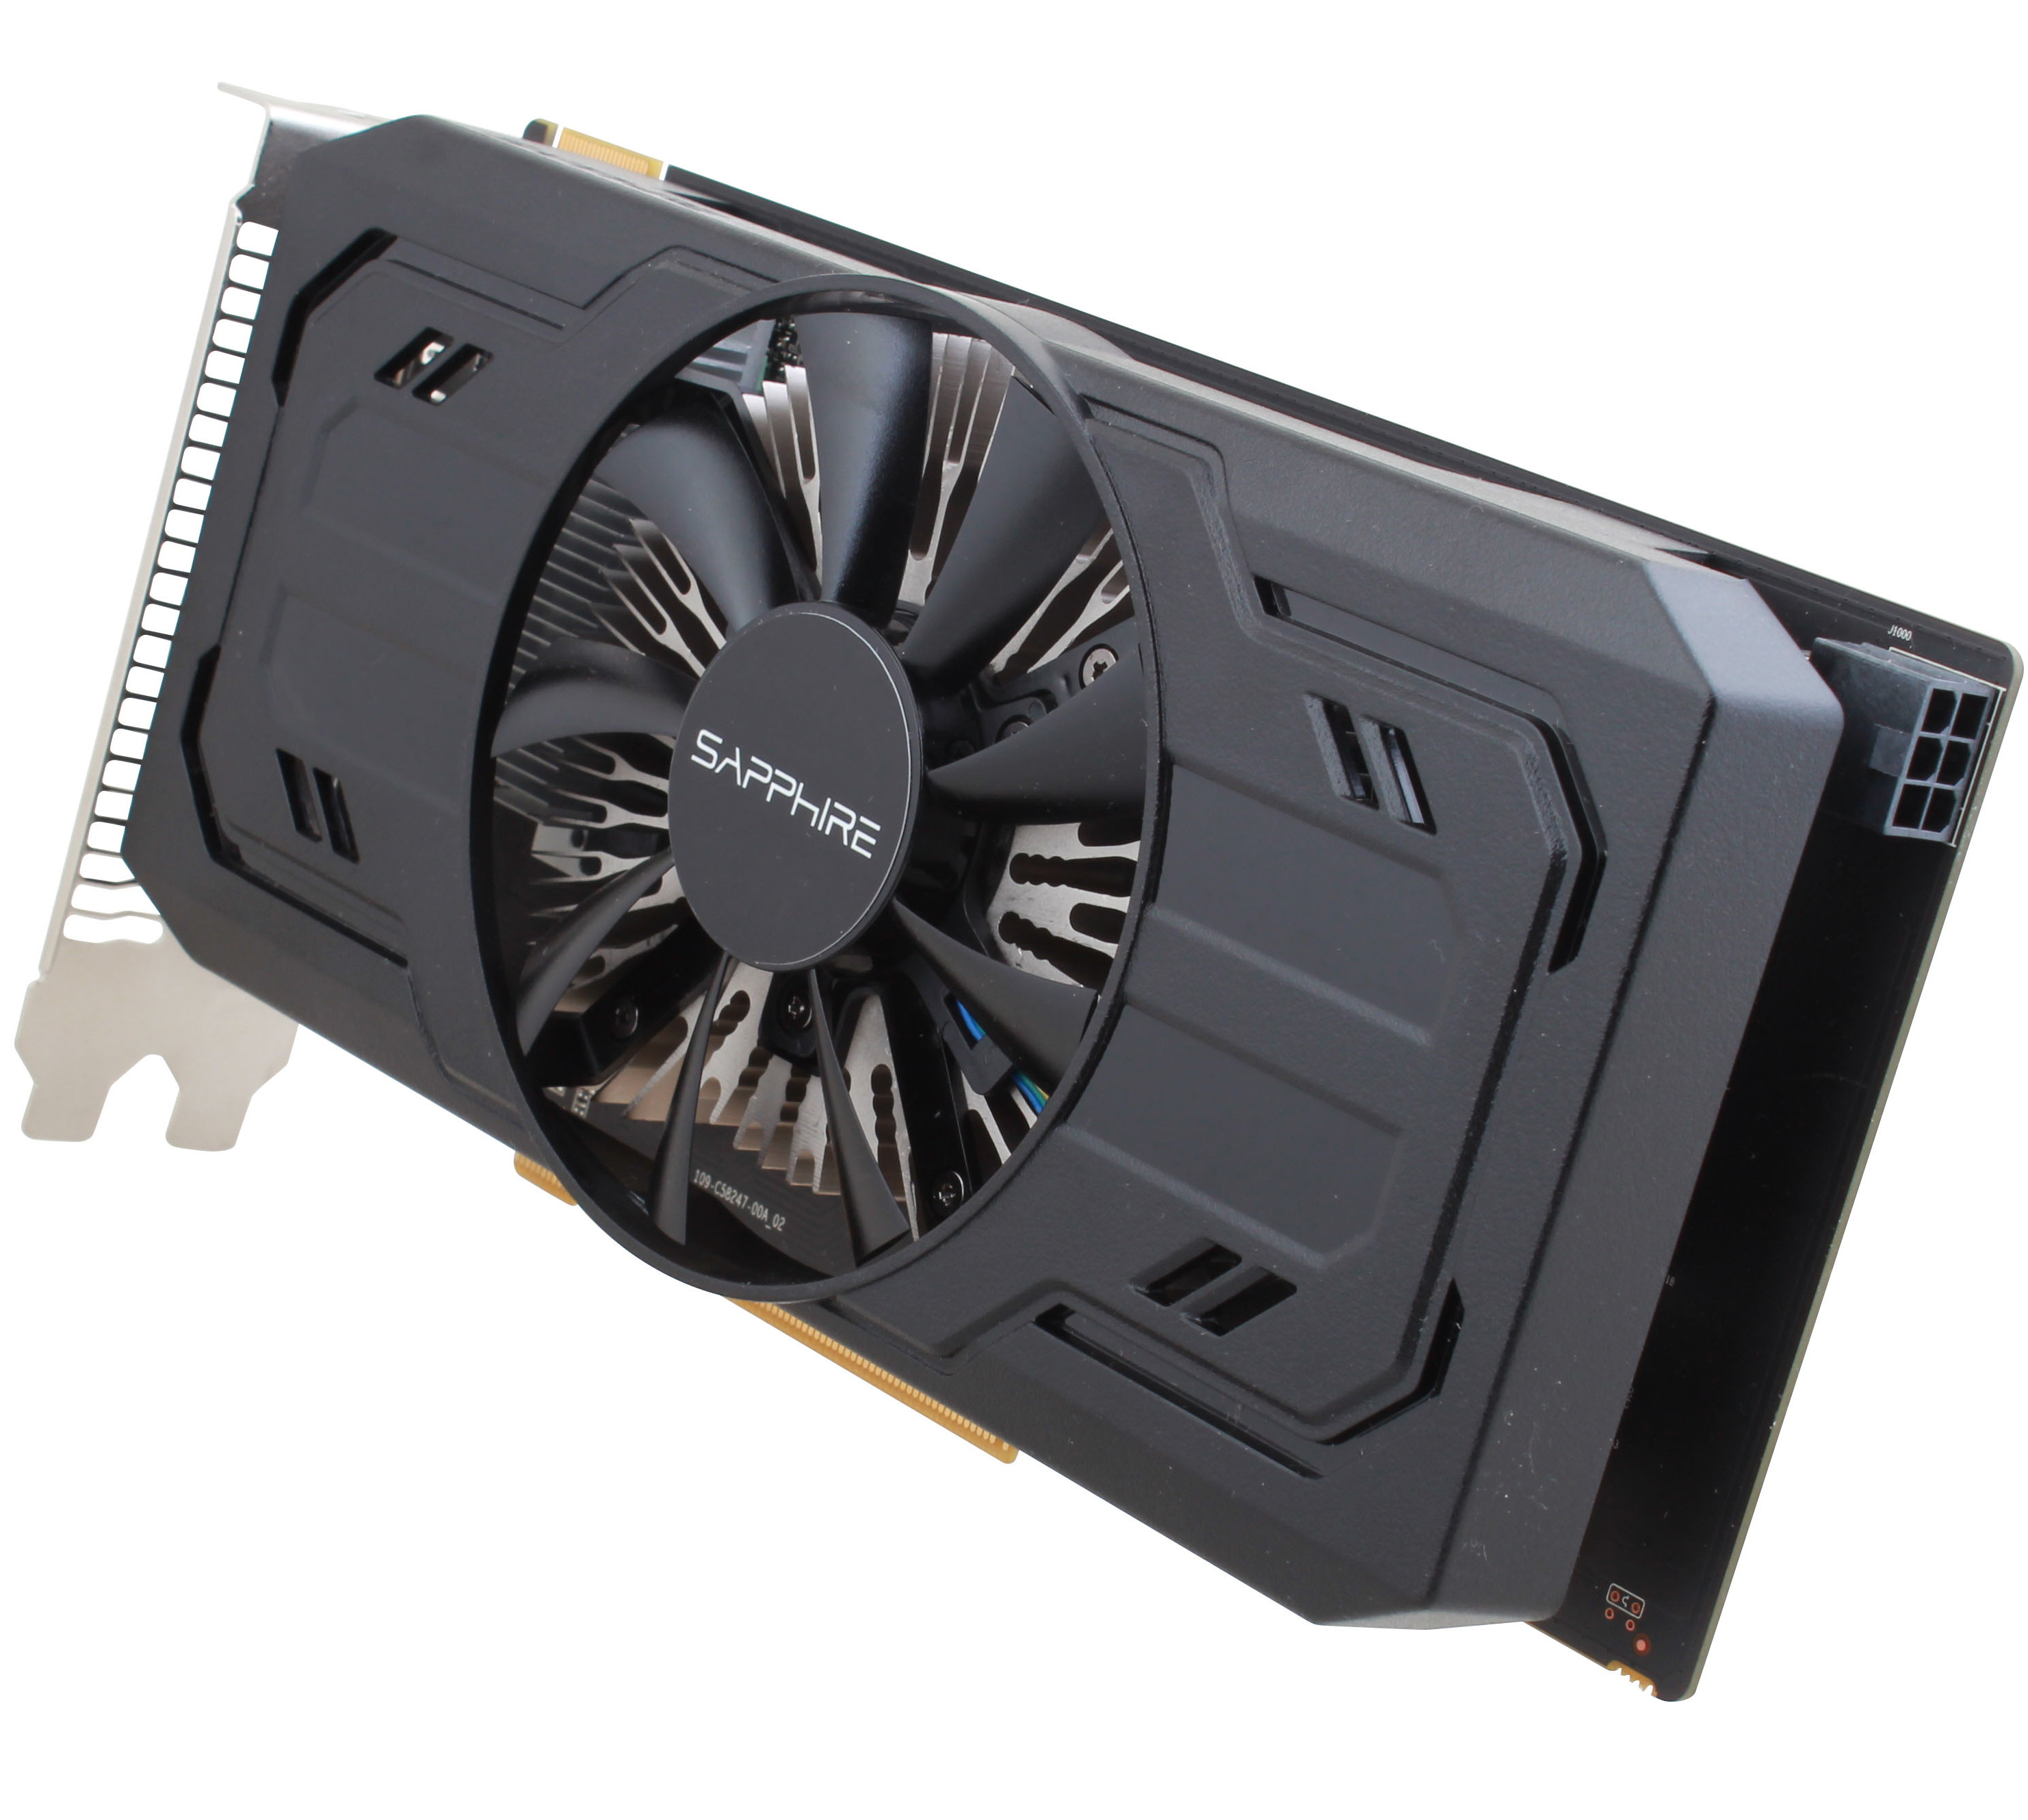 Sapphire - R7 260X - iCafe